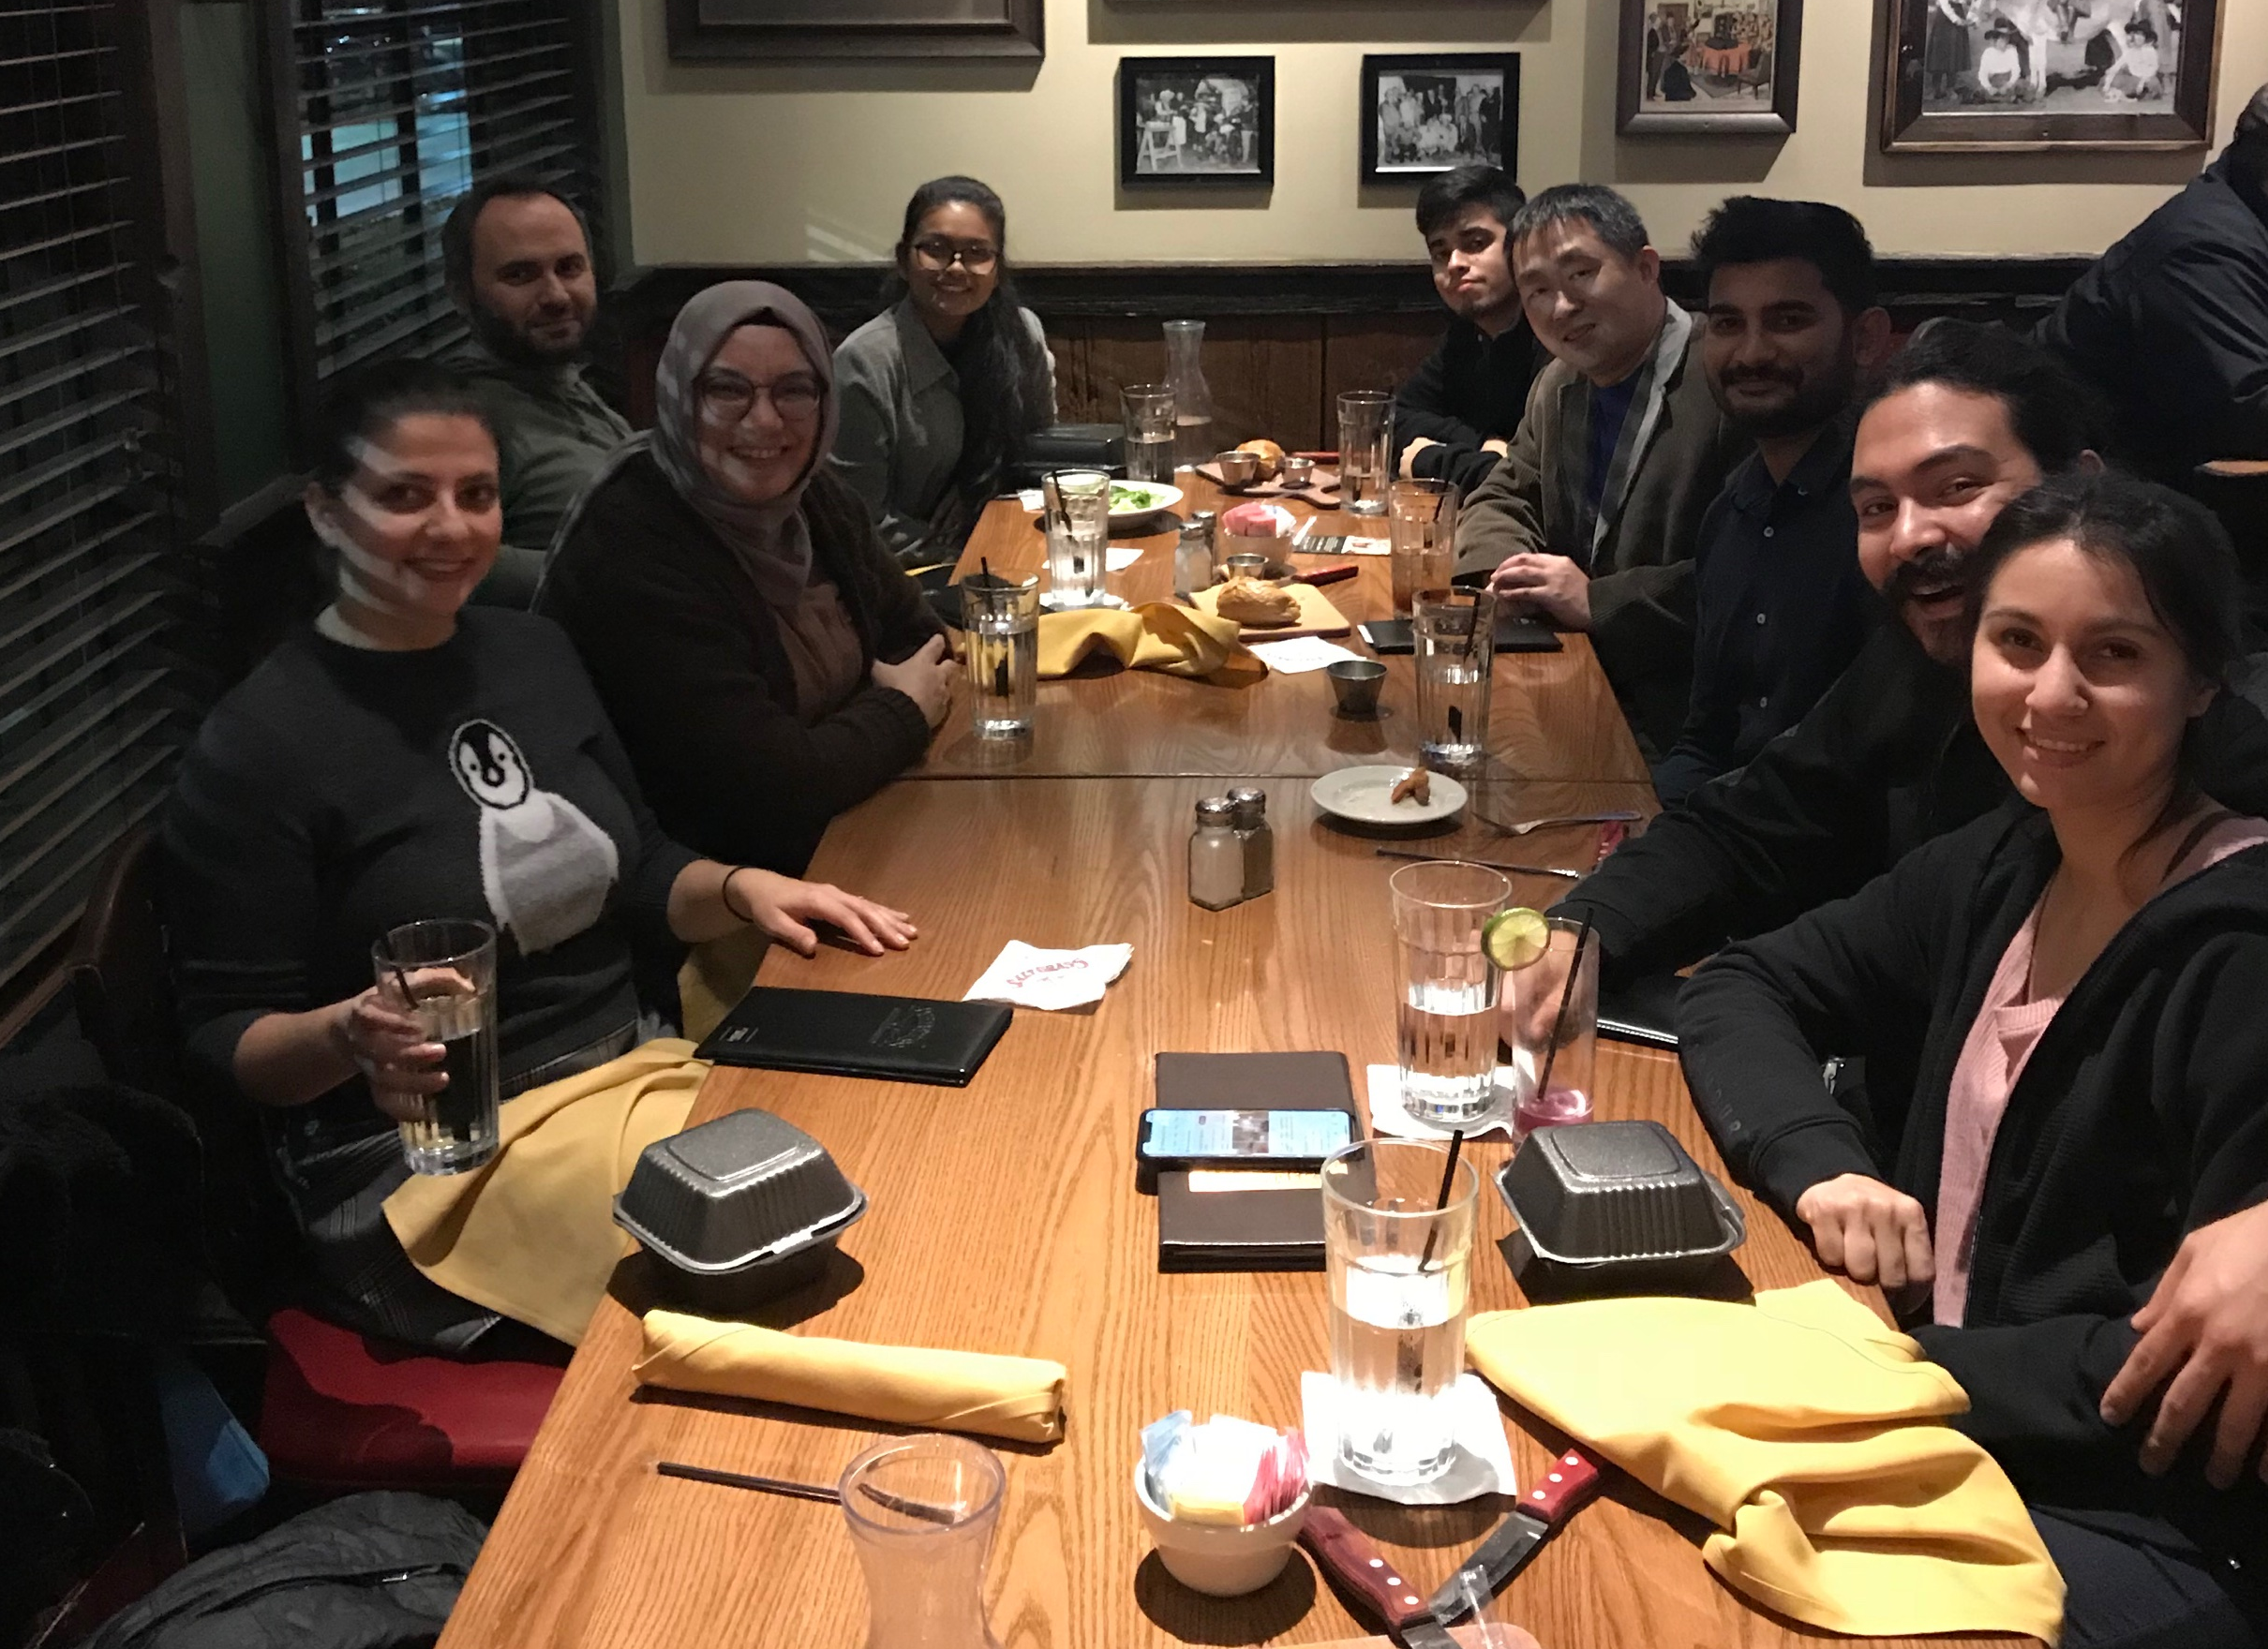 Farewell dinner for Summet Lubal (Jan. 8, 2020)